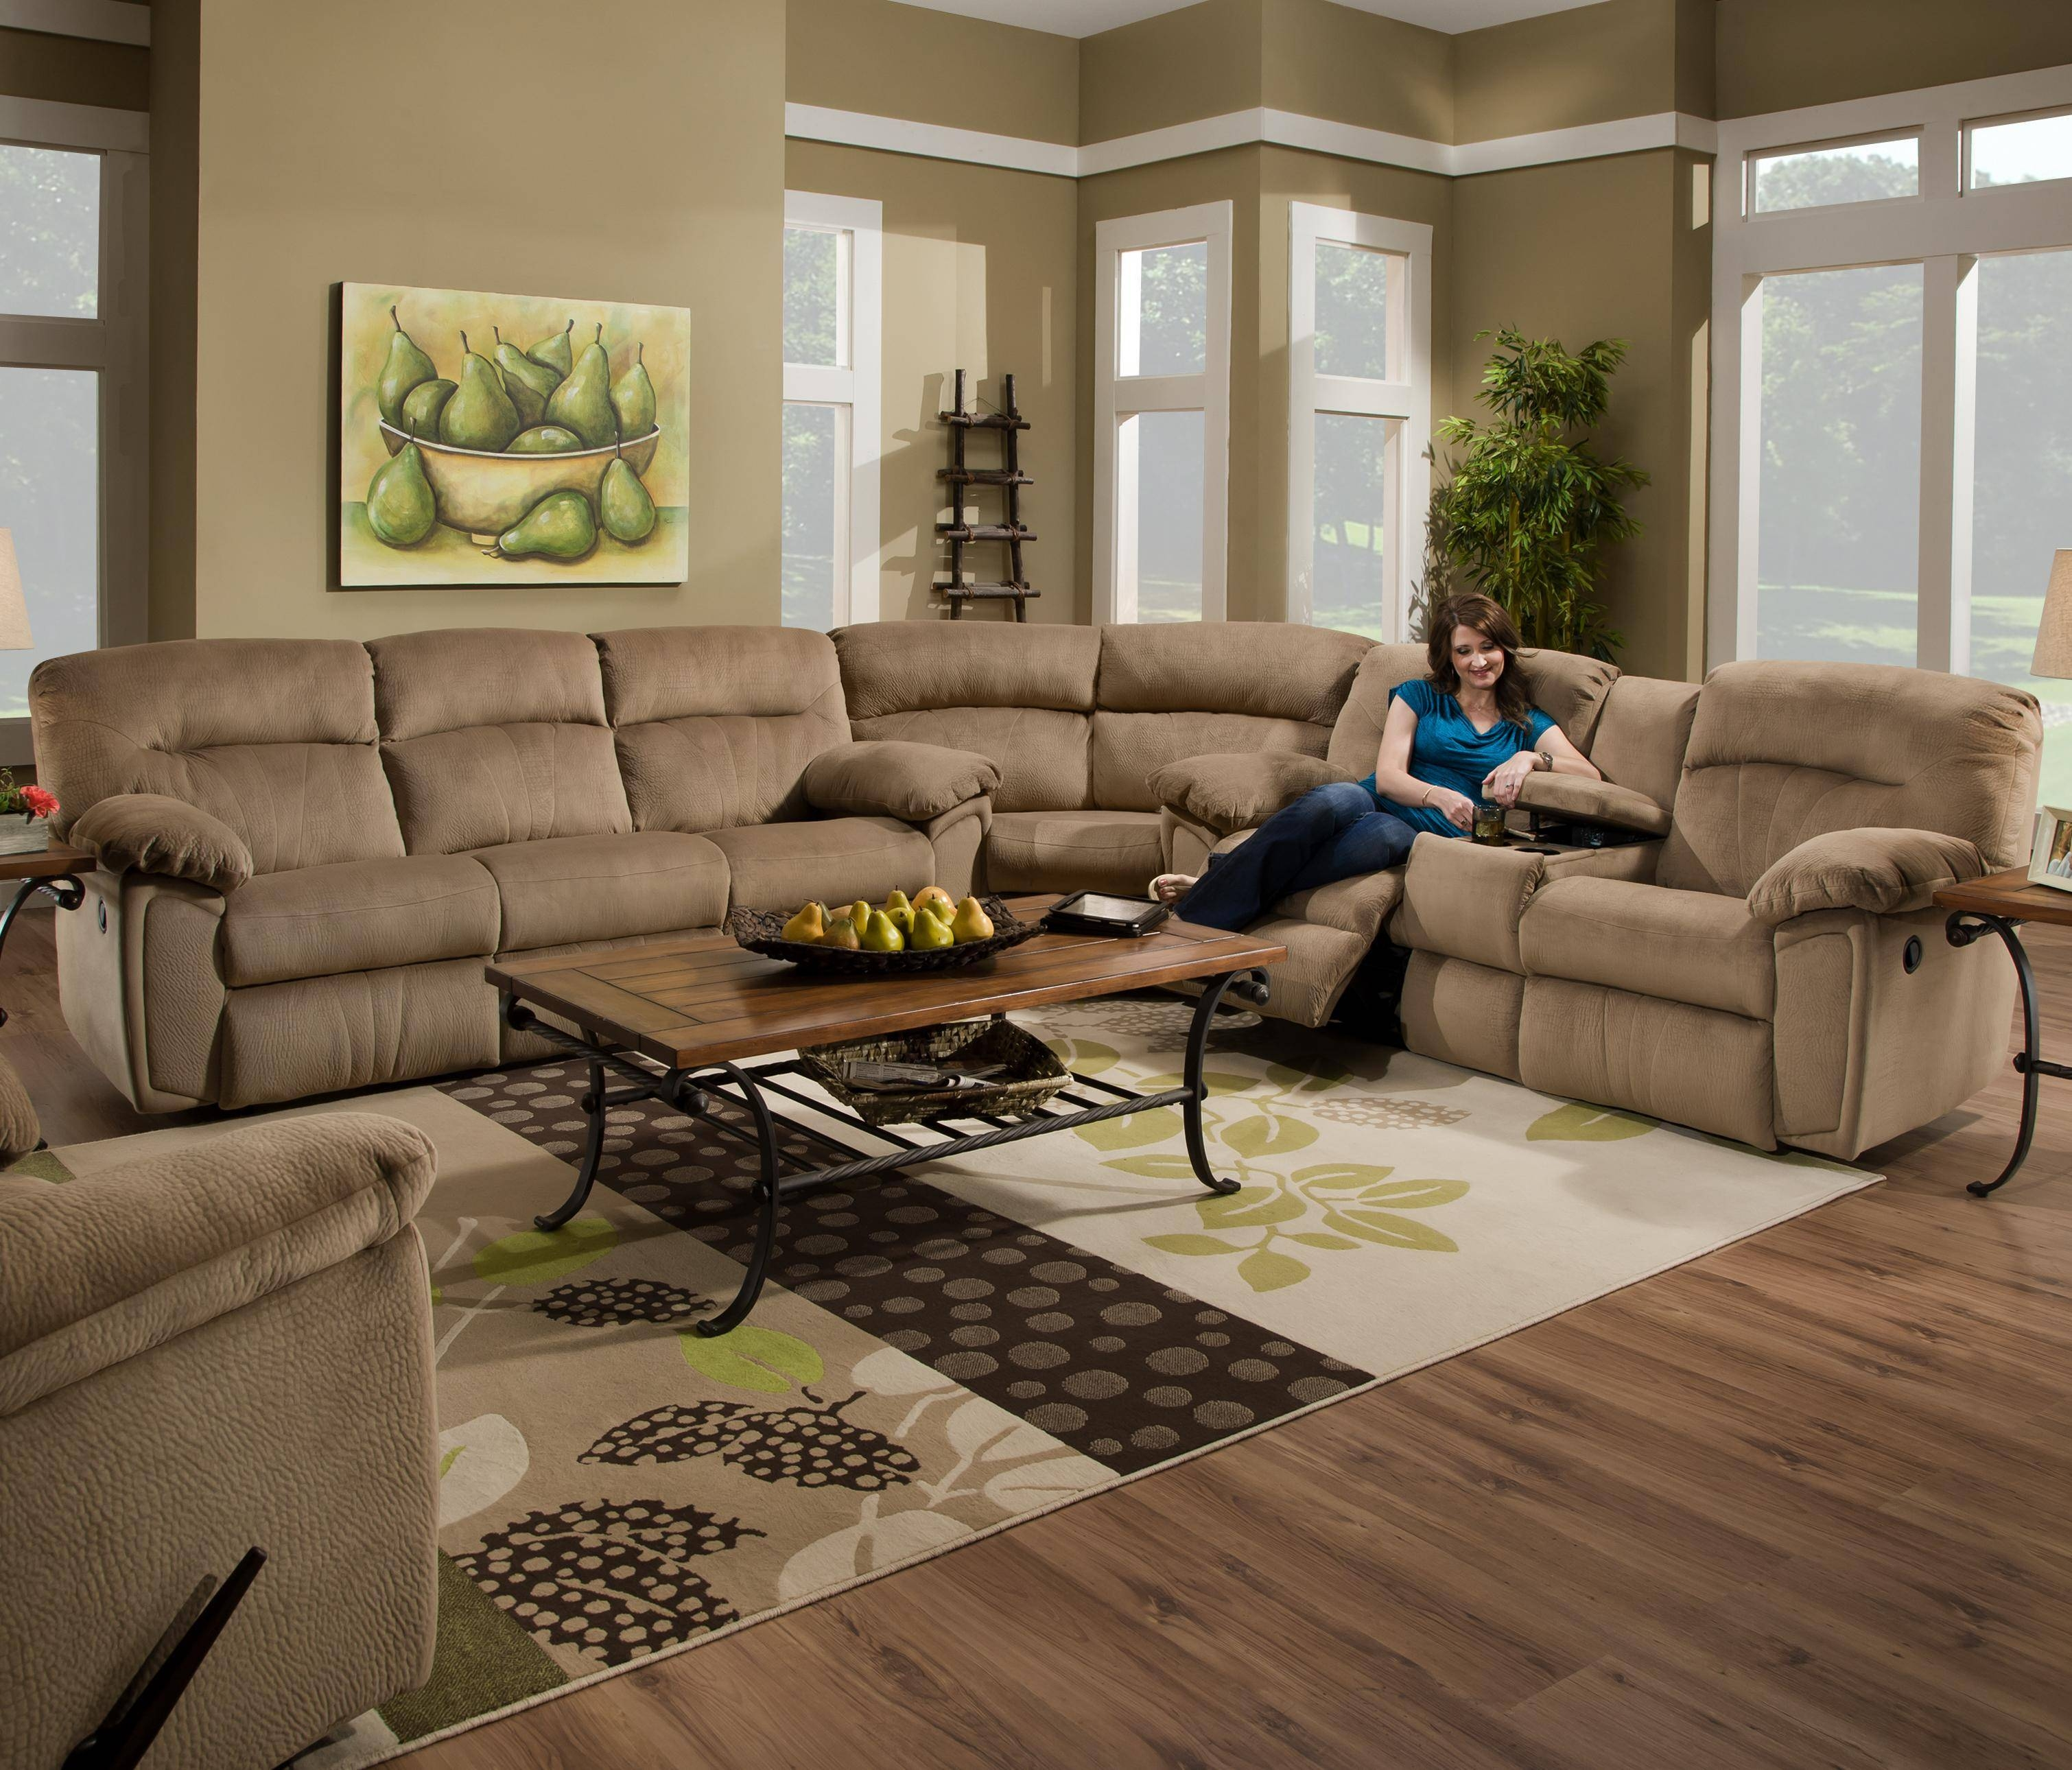 Perfect Recliner Sectional Sofa 99 Sofas And Couches Set With throughout Recliner Sectional Sofas (Image 24 of 30)